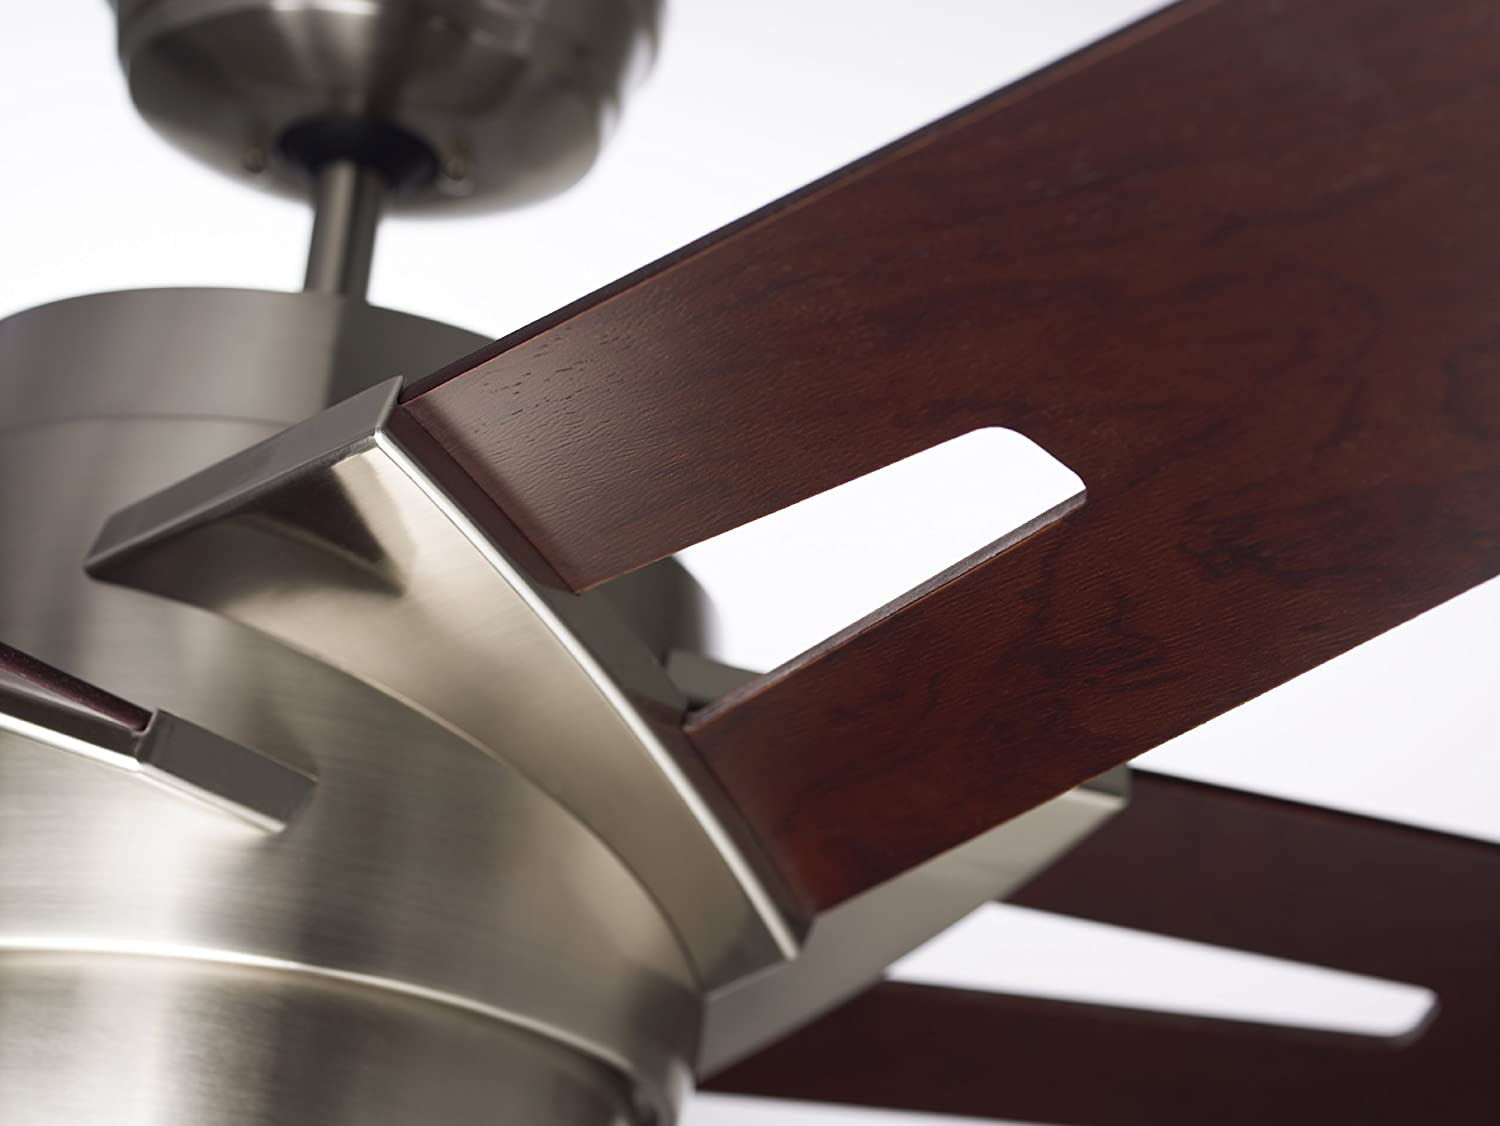 Emerson aira eco 72 inch oil rubbed bronze modern ceiling fan free - Emerson Ceiling Fans Cf550dmbs Luxe Eco Modern Ceiling Fans With Light And Wall Control 54 Inch Blades Brushed Steel Finish Close To Ceiling Light